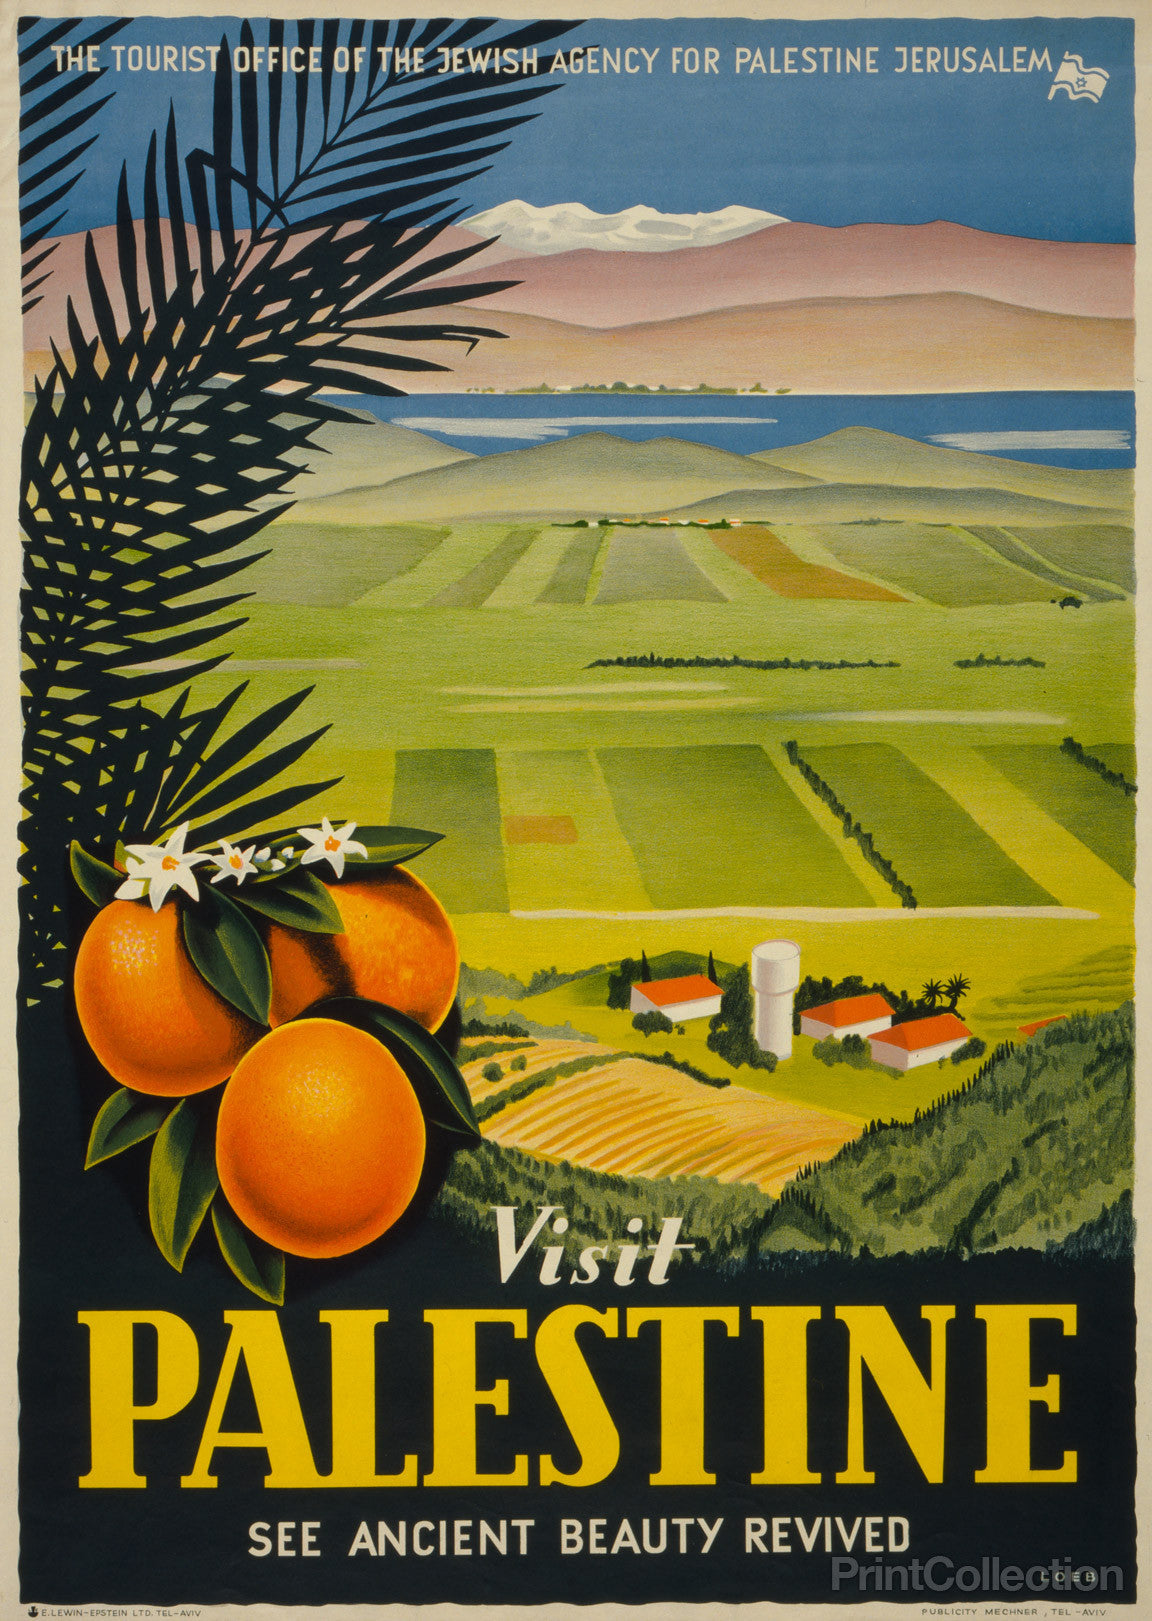 Print Collection - Visit Palestine - Revived